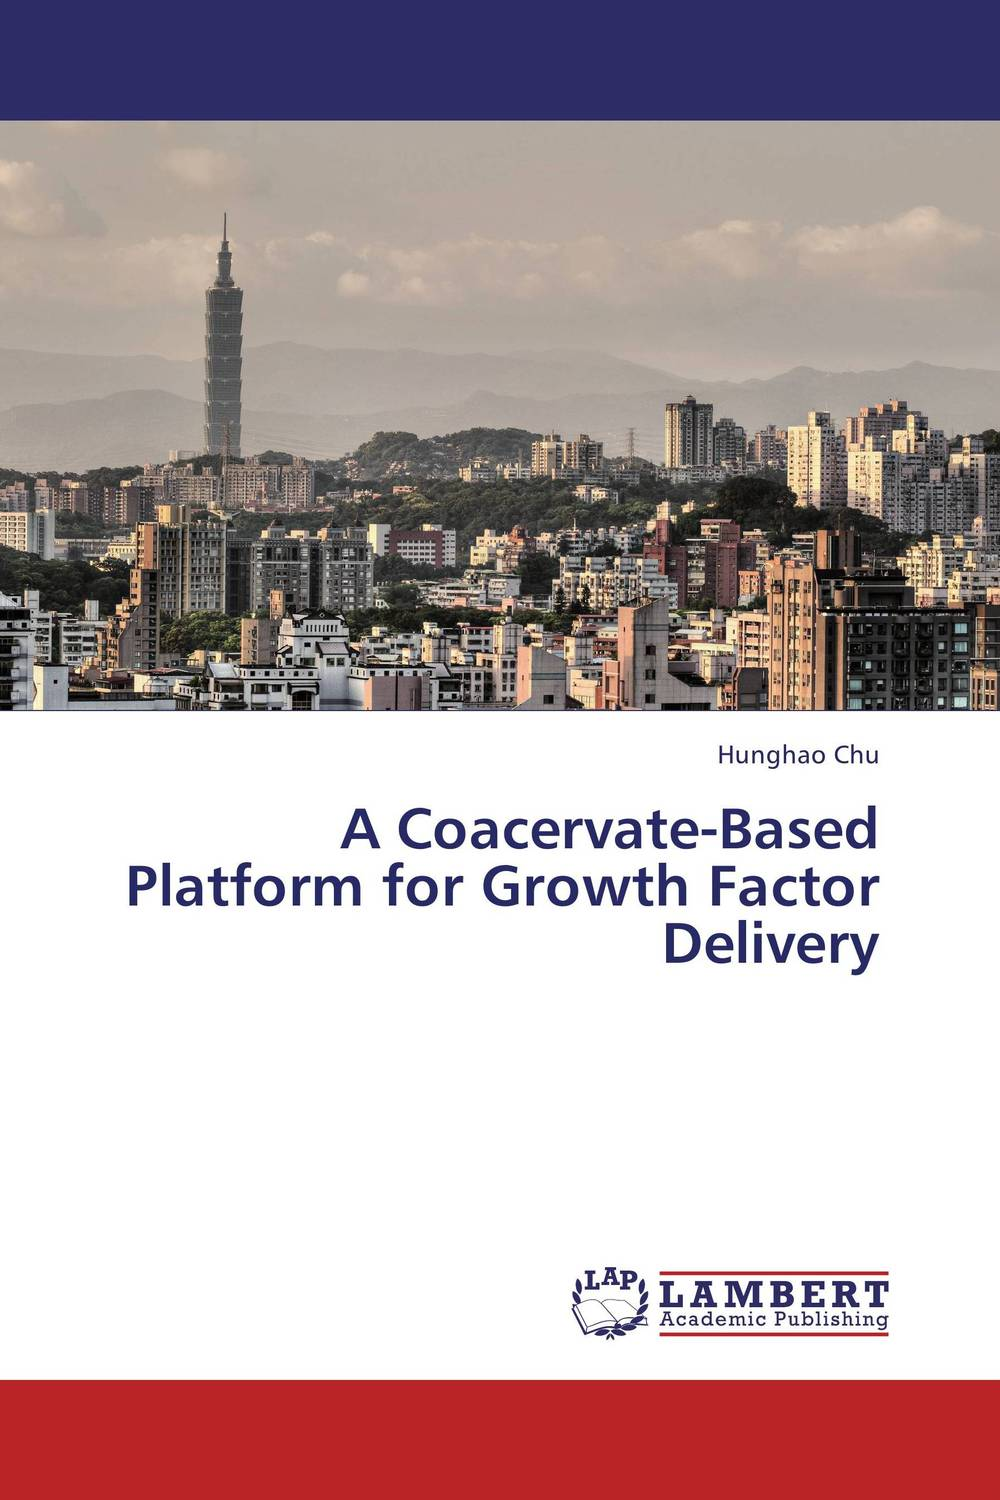 A Coacervate-Based Platform for Growth Factor Delivery growth factors